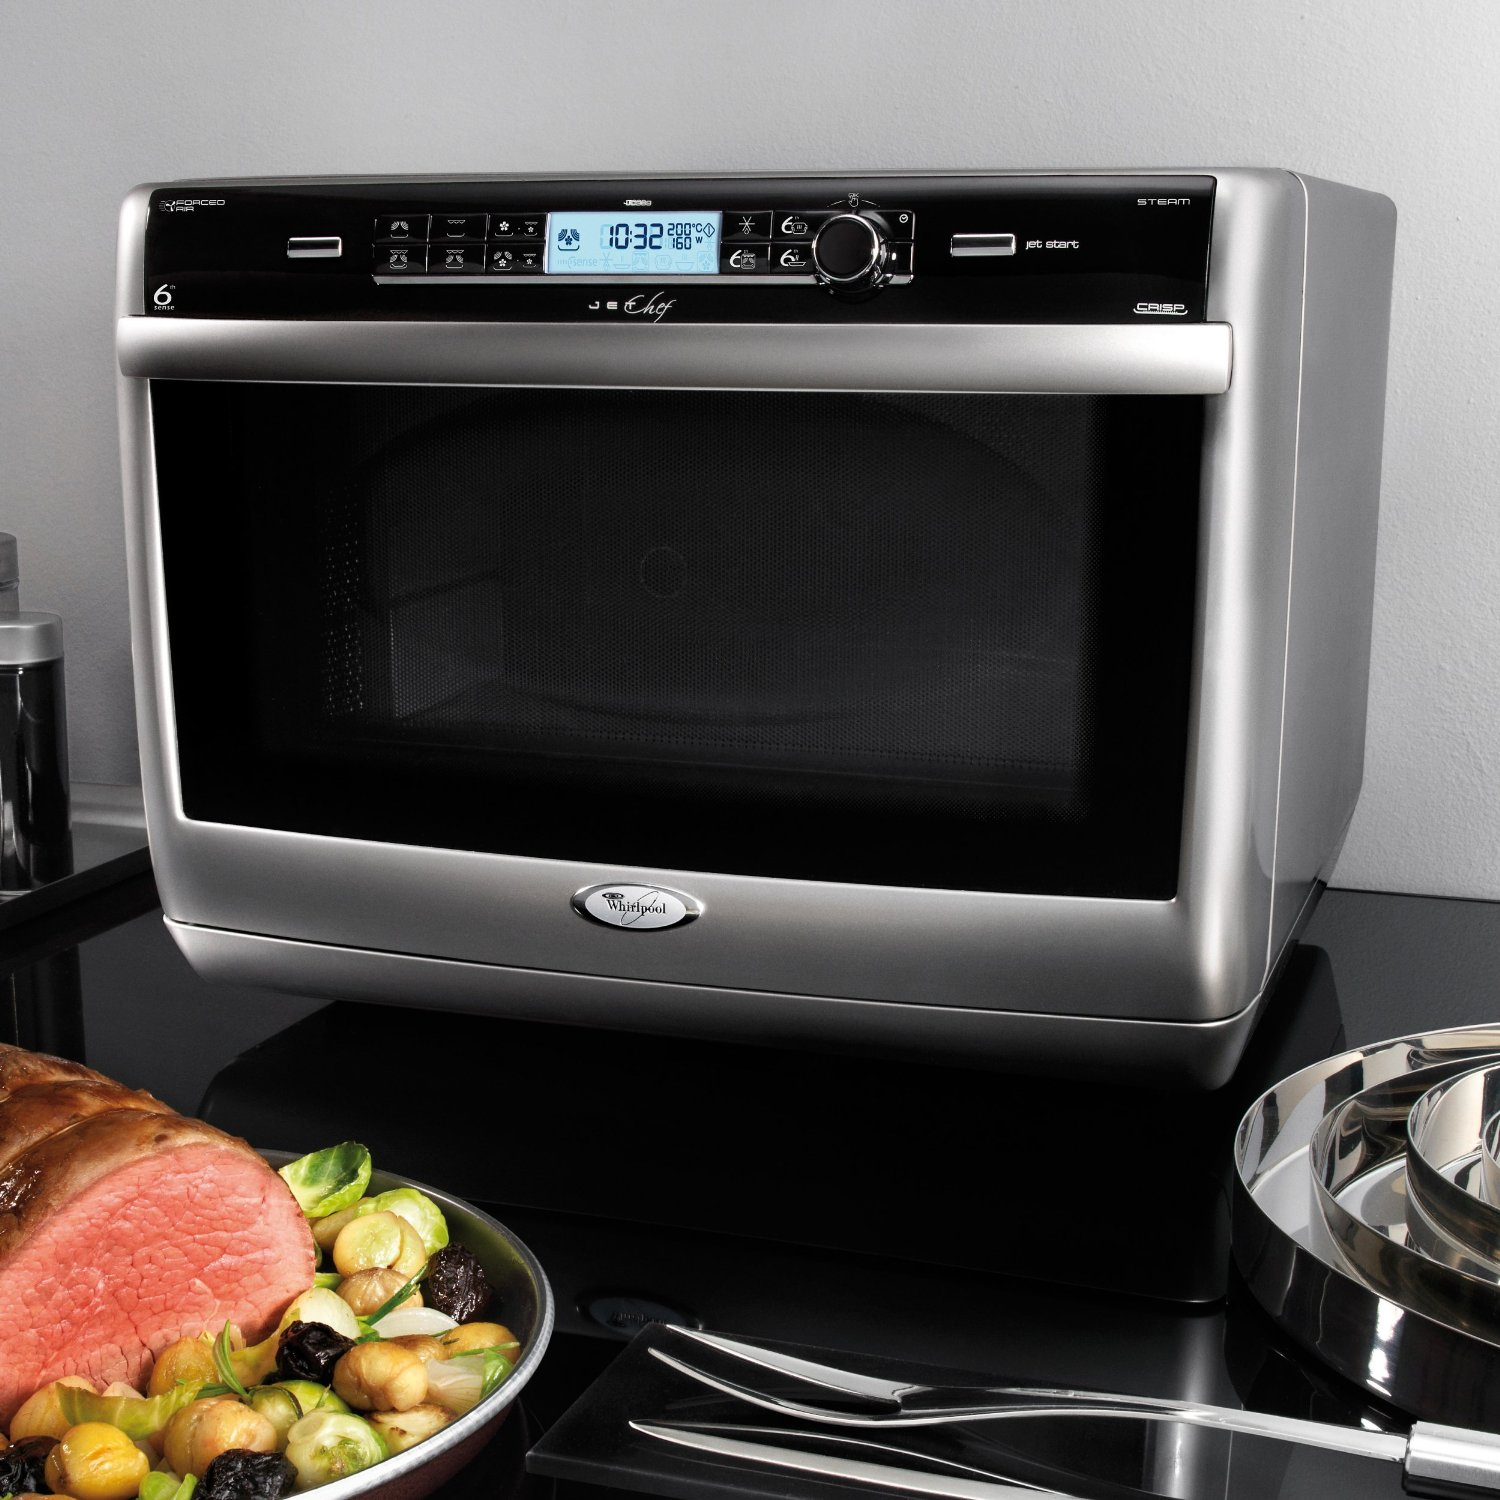 whirlpool jet chef 31l 1000w family microwave review microwave review. Black Bedroom Furniture Sets. Home Design Ideas